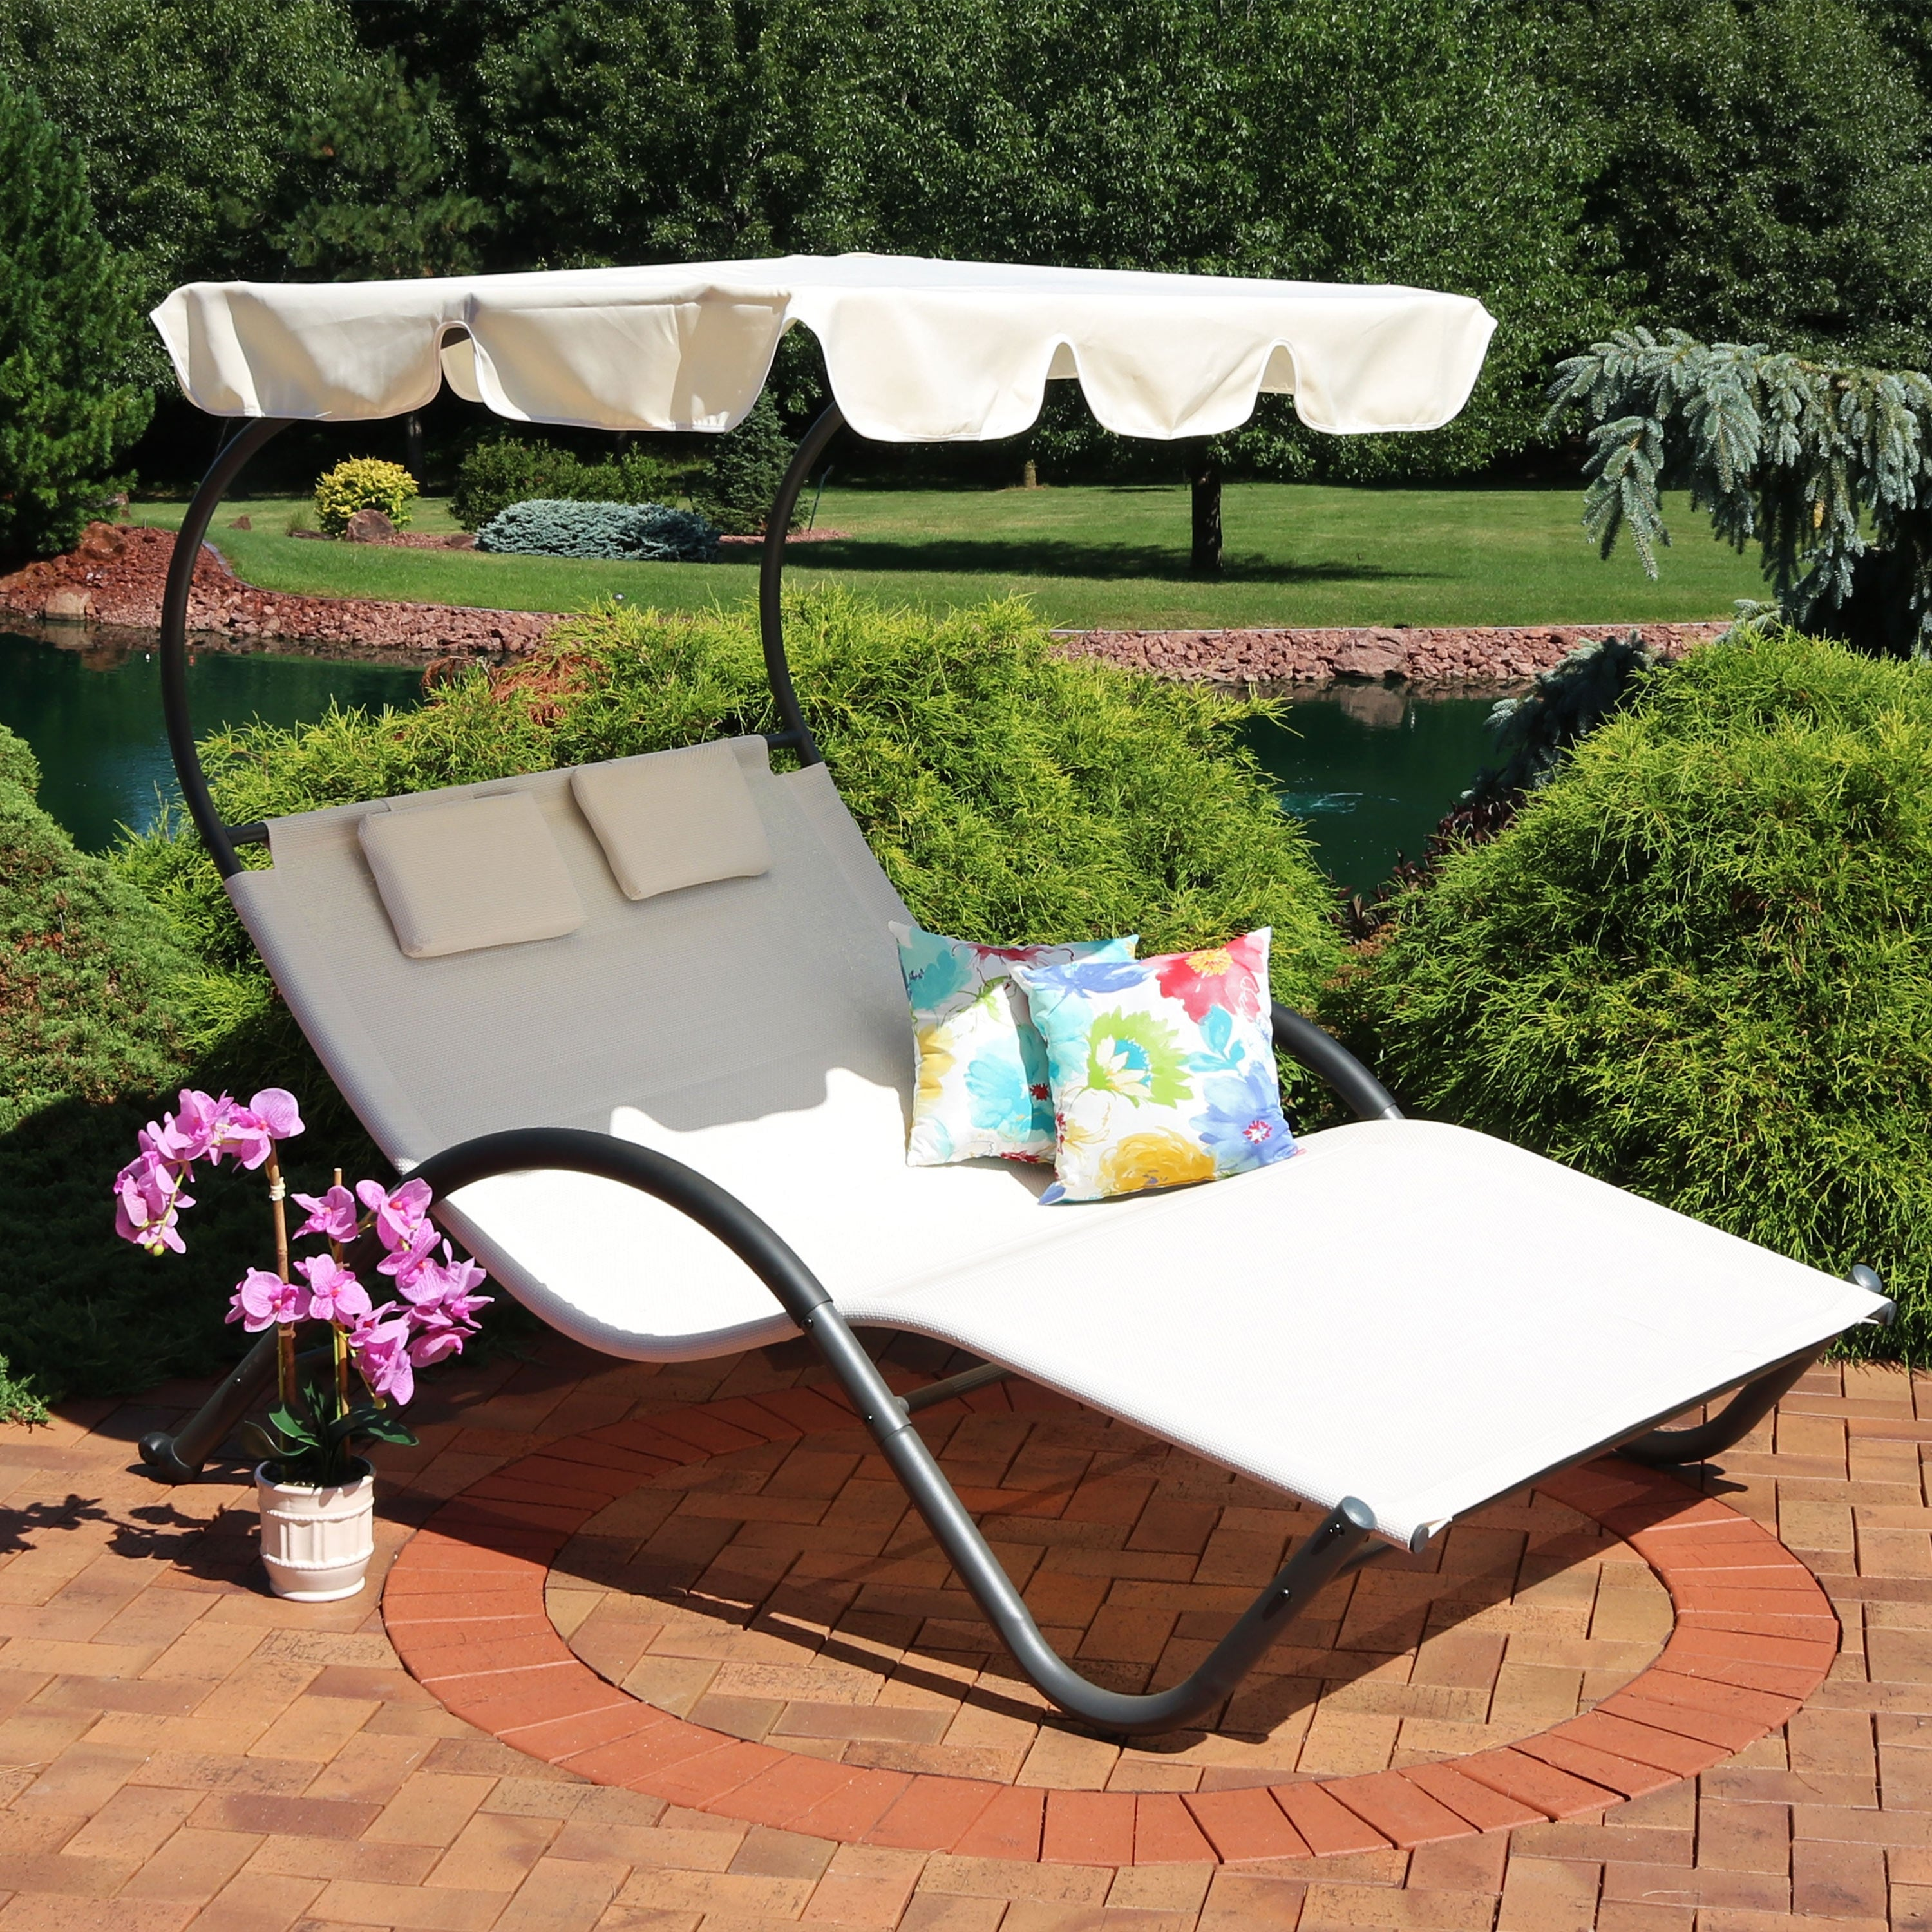 - Shop Sunnydaze Double Chaise Lounge With Canopy Shade And Headrest Pillows  - Beige - Overstock - 22890405